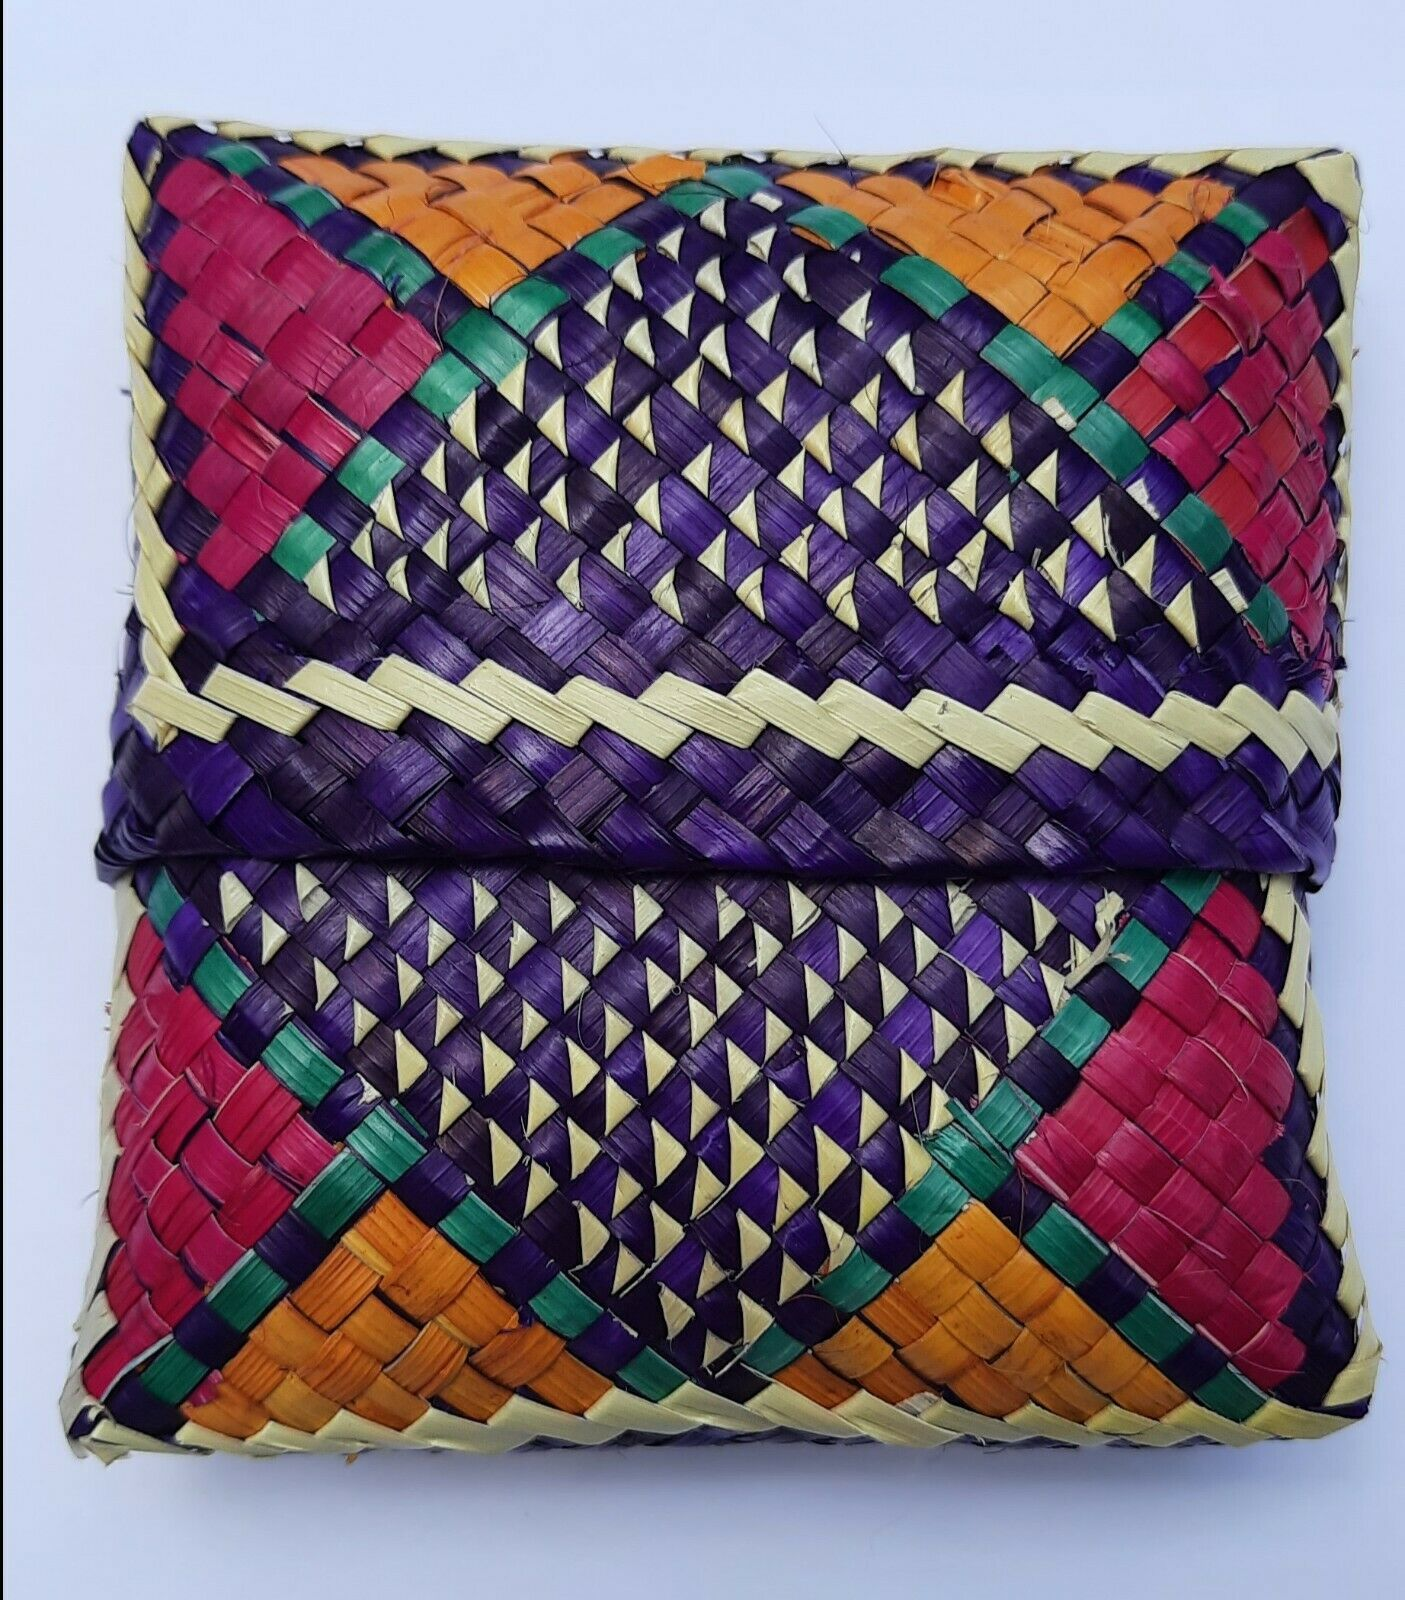 HANDMADE WALLET EARPHONE POUCH woven palm leaves reed eco friendly traditional